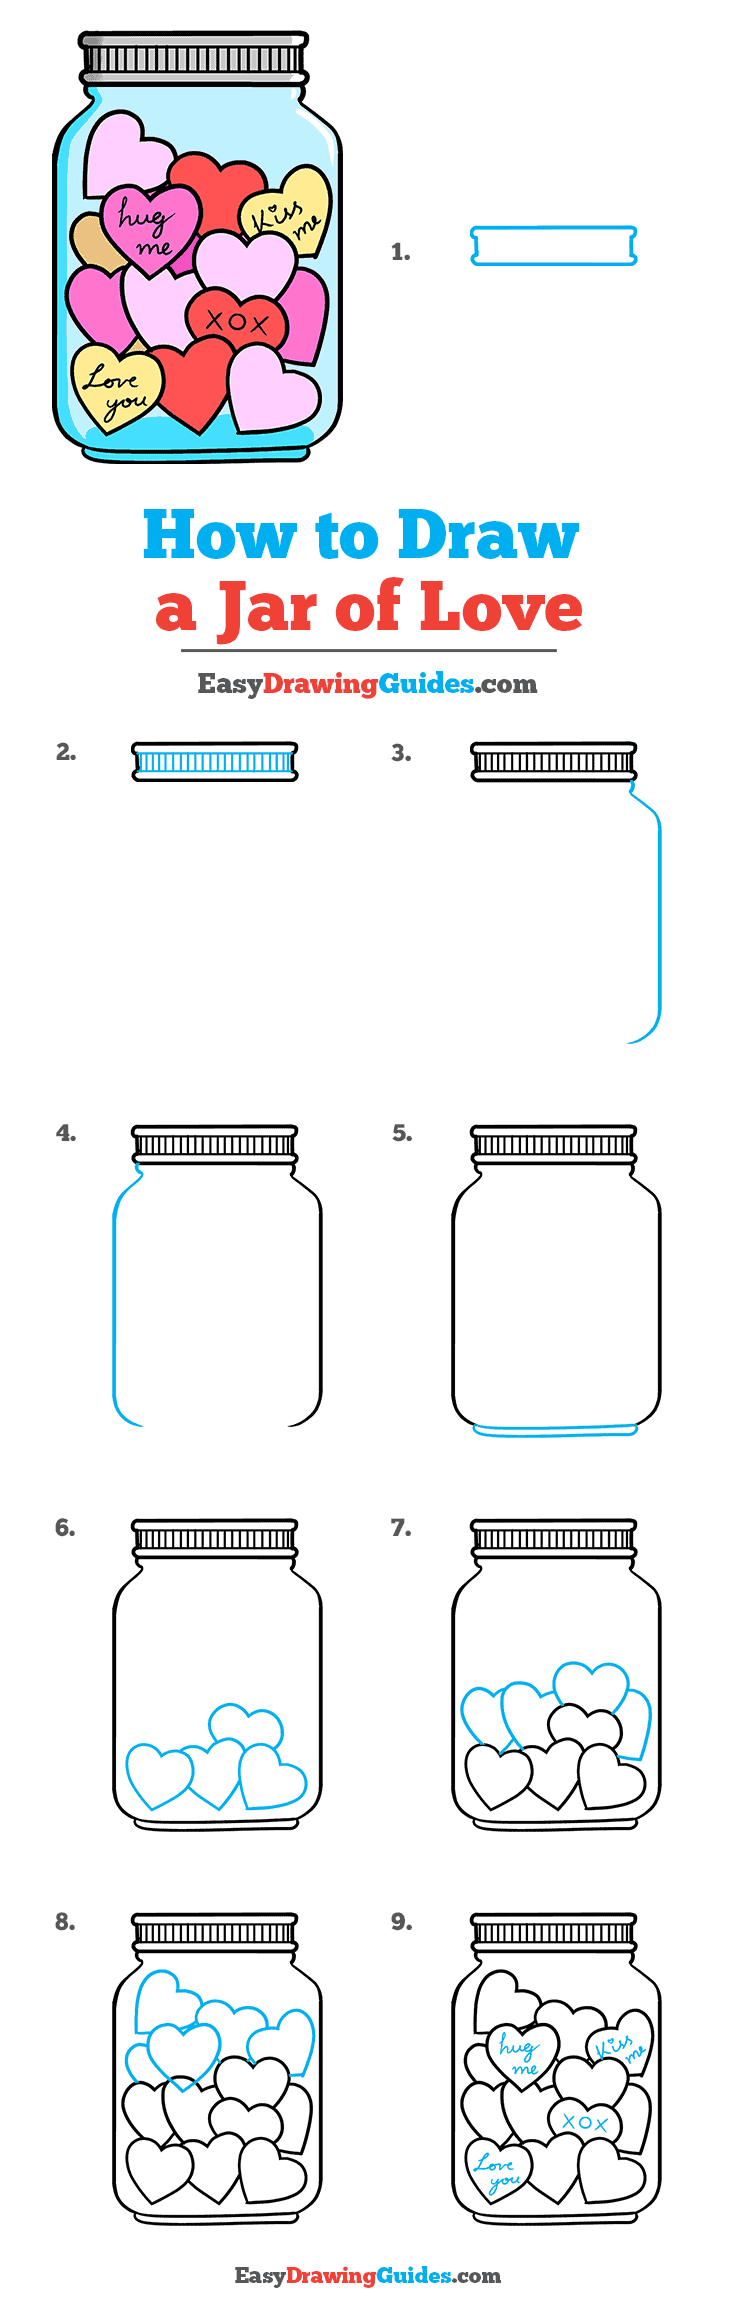 How to Draw a Jar of Love Step by Step Tutorial Image